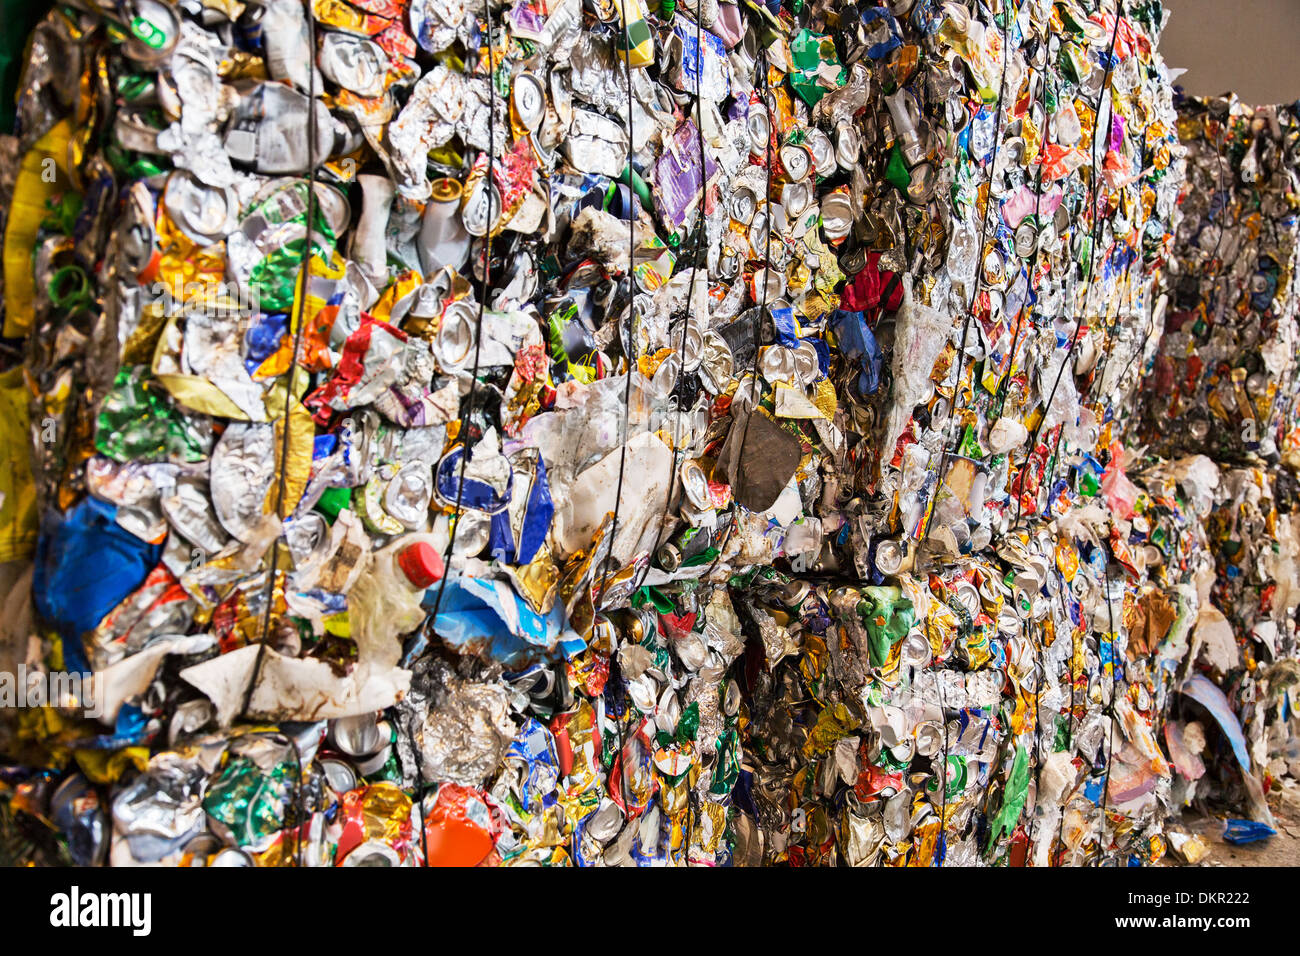 Compressed recycling bundles - Stock Image